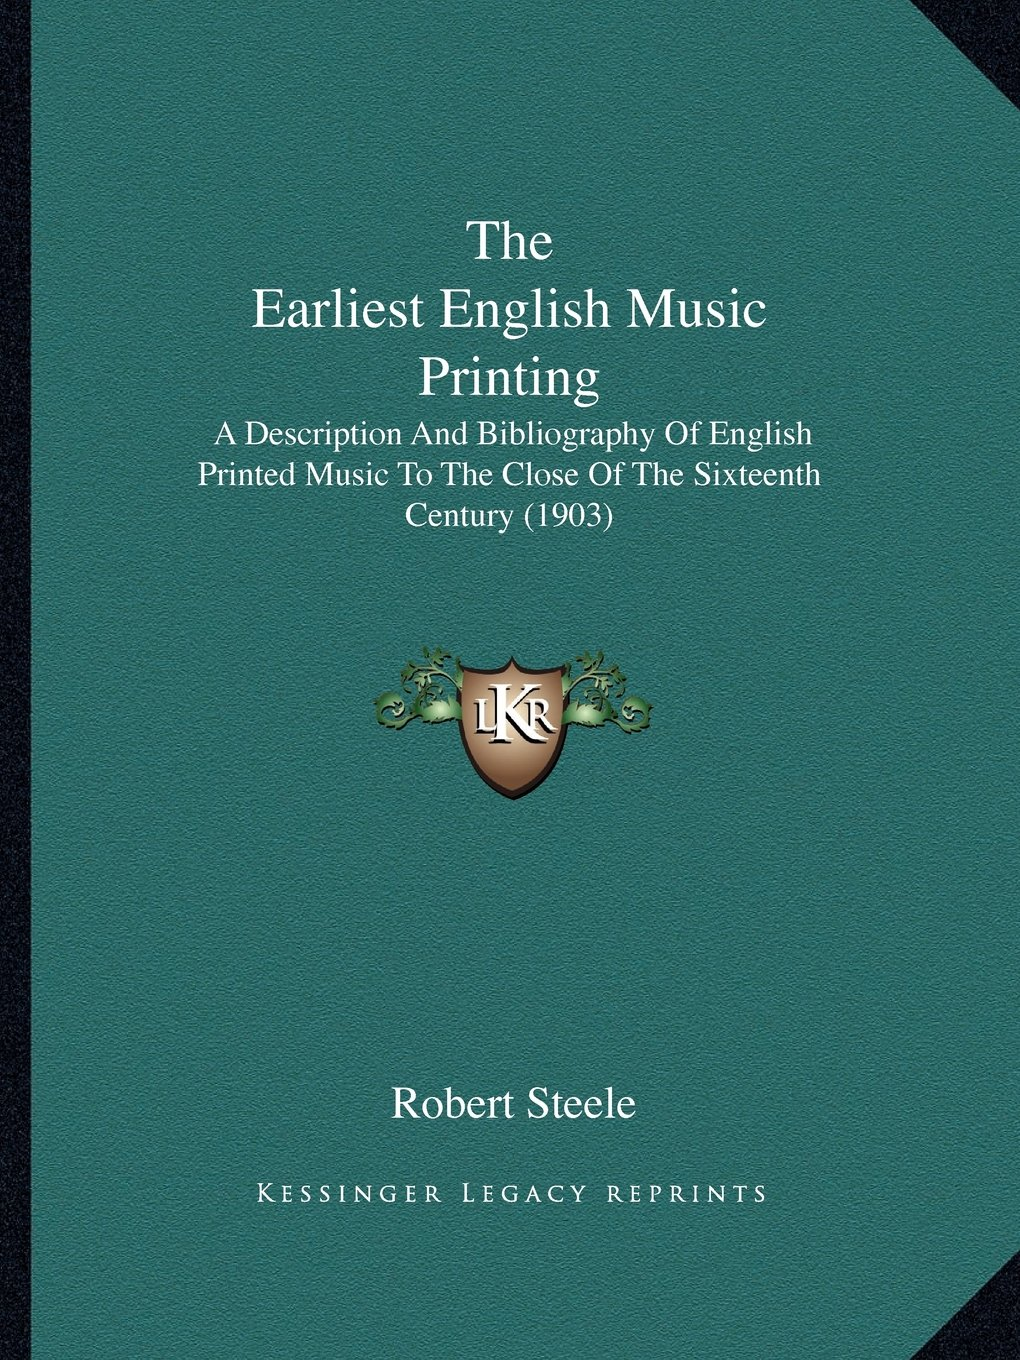 Download The Earliest English Music Printing: A Description and Bibliography of English Printed Music to the Close of the Sixteenth Century (1903) ebook